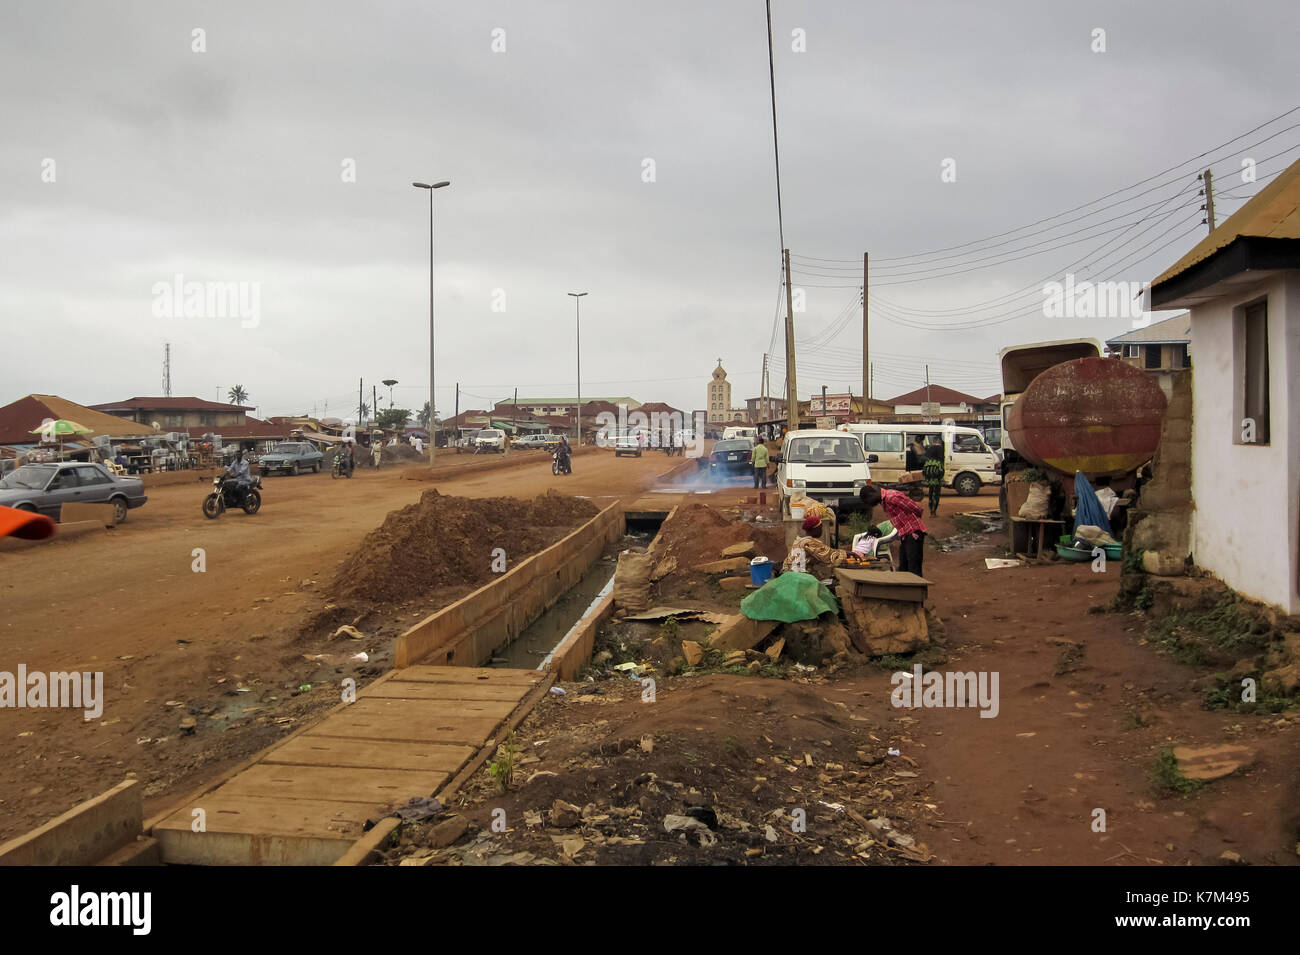 Street view with people and cars in the city of Akure, the largest city in Ondo State, Nigeria - Stock Image